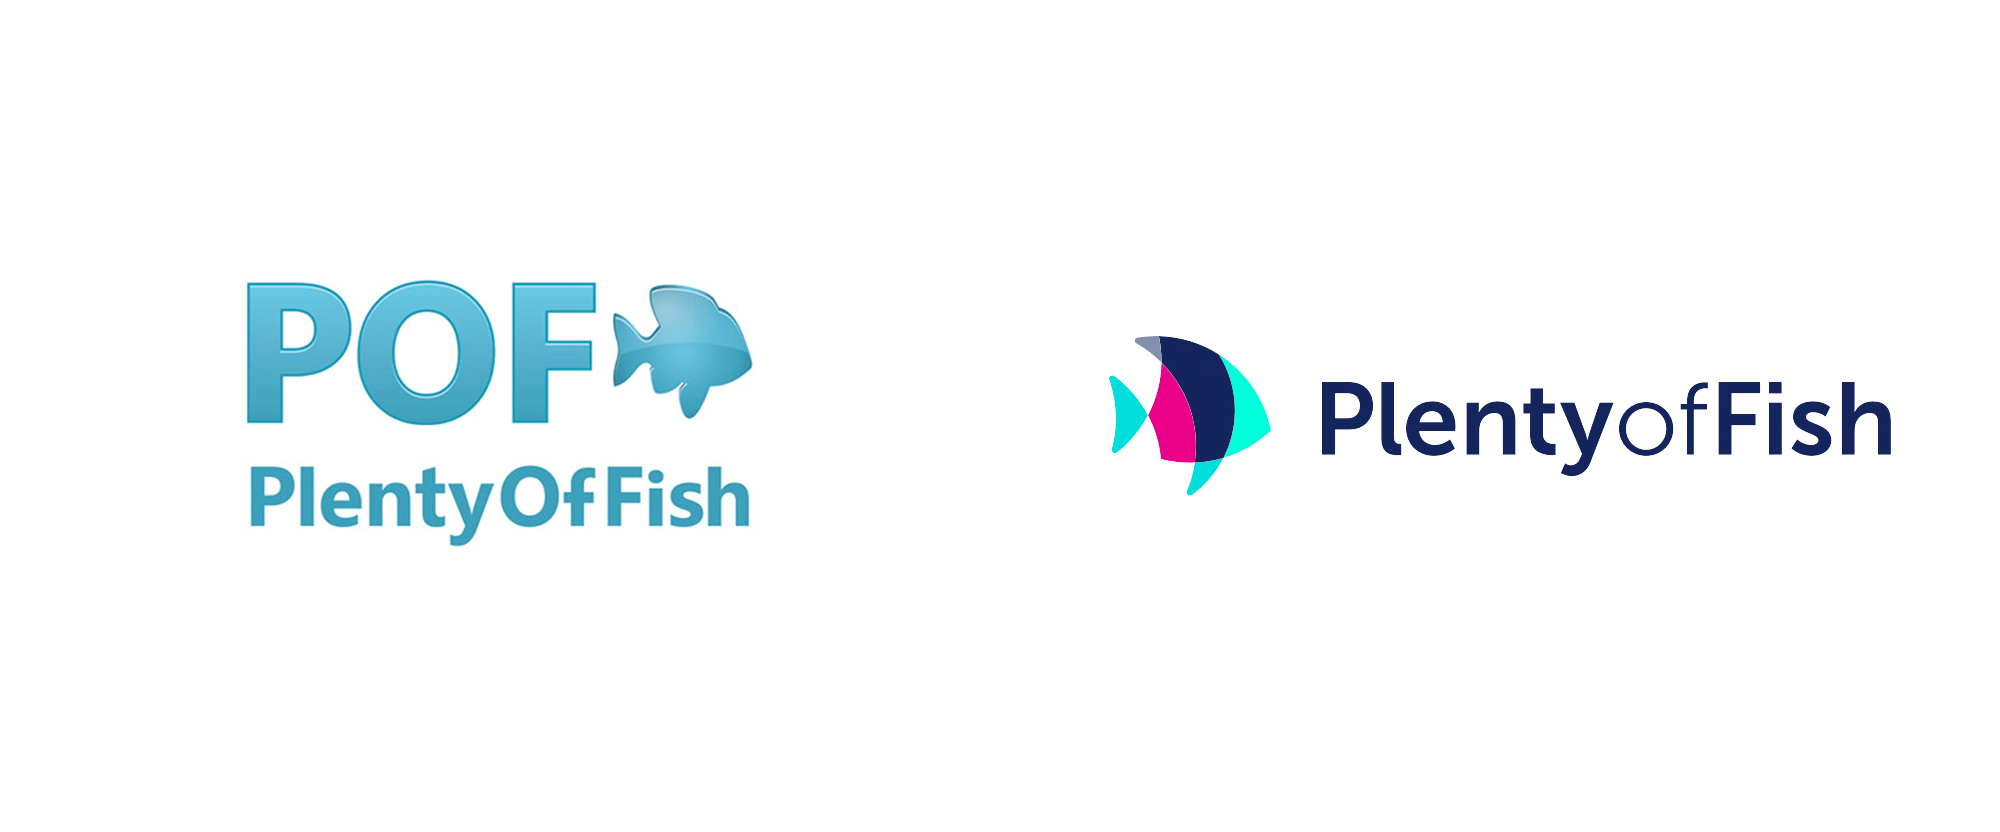 New Logo for Plenty of Fish